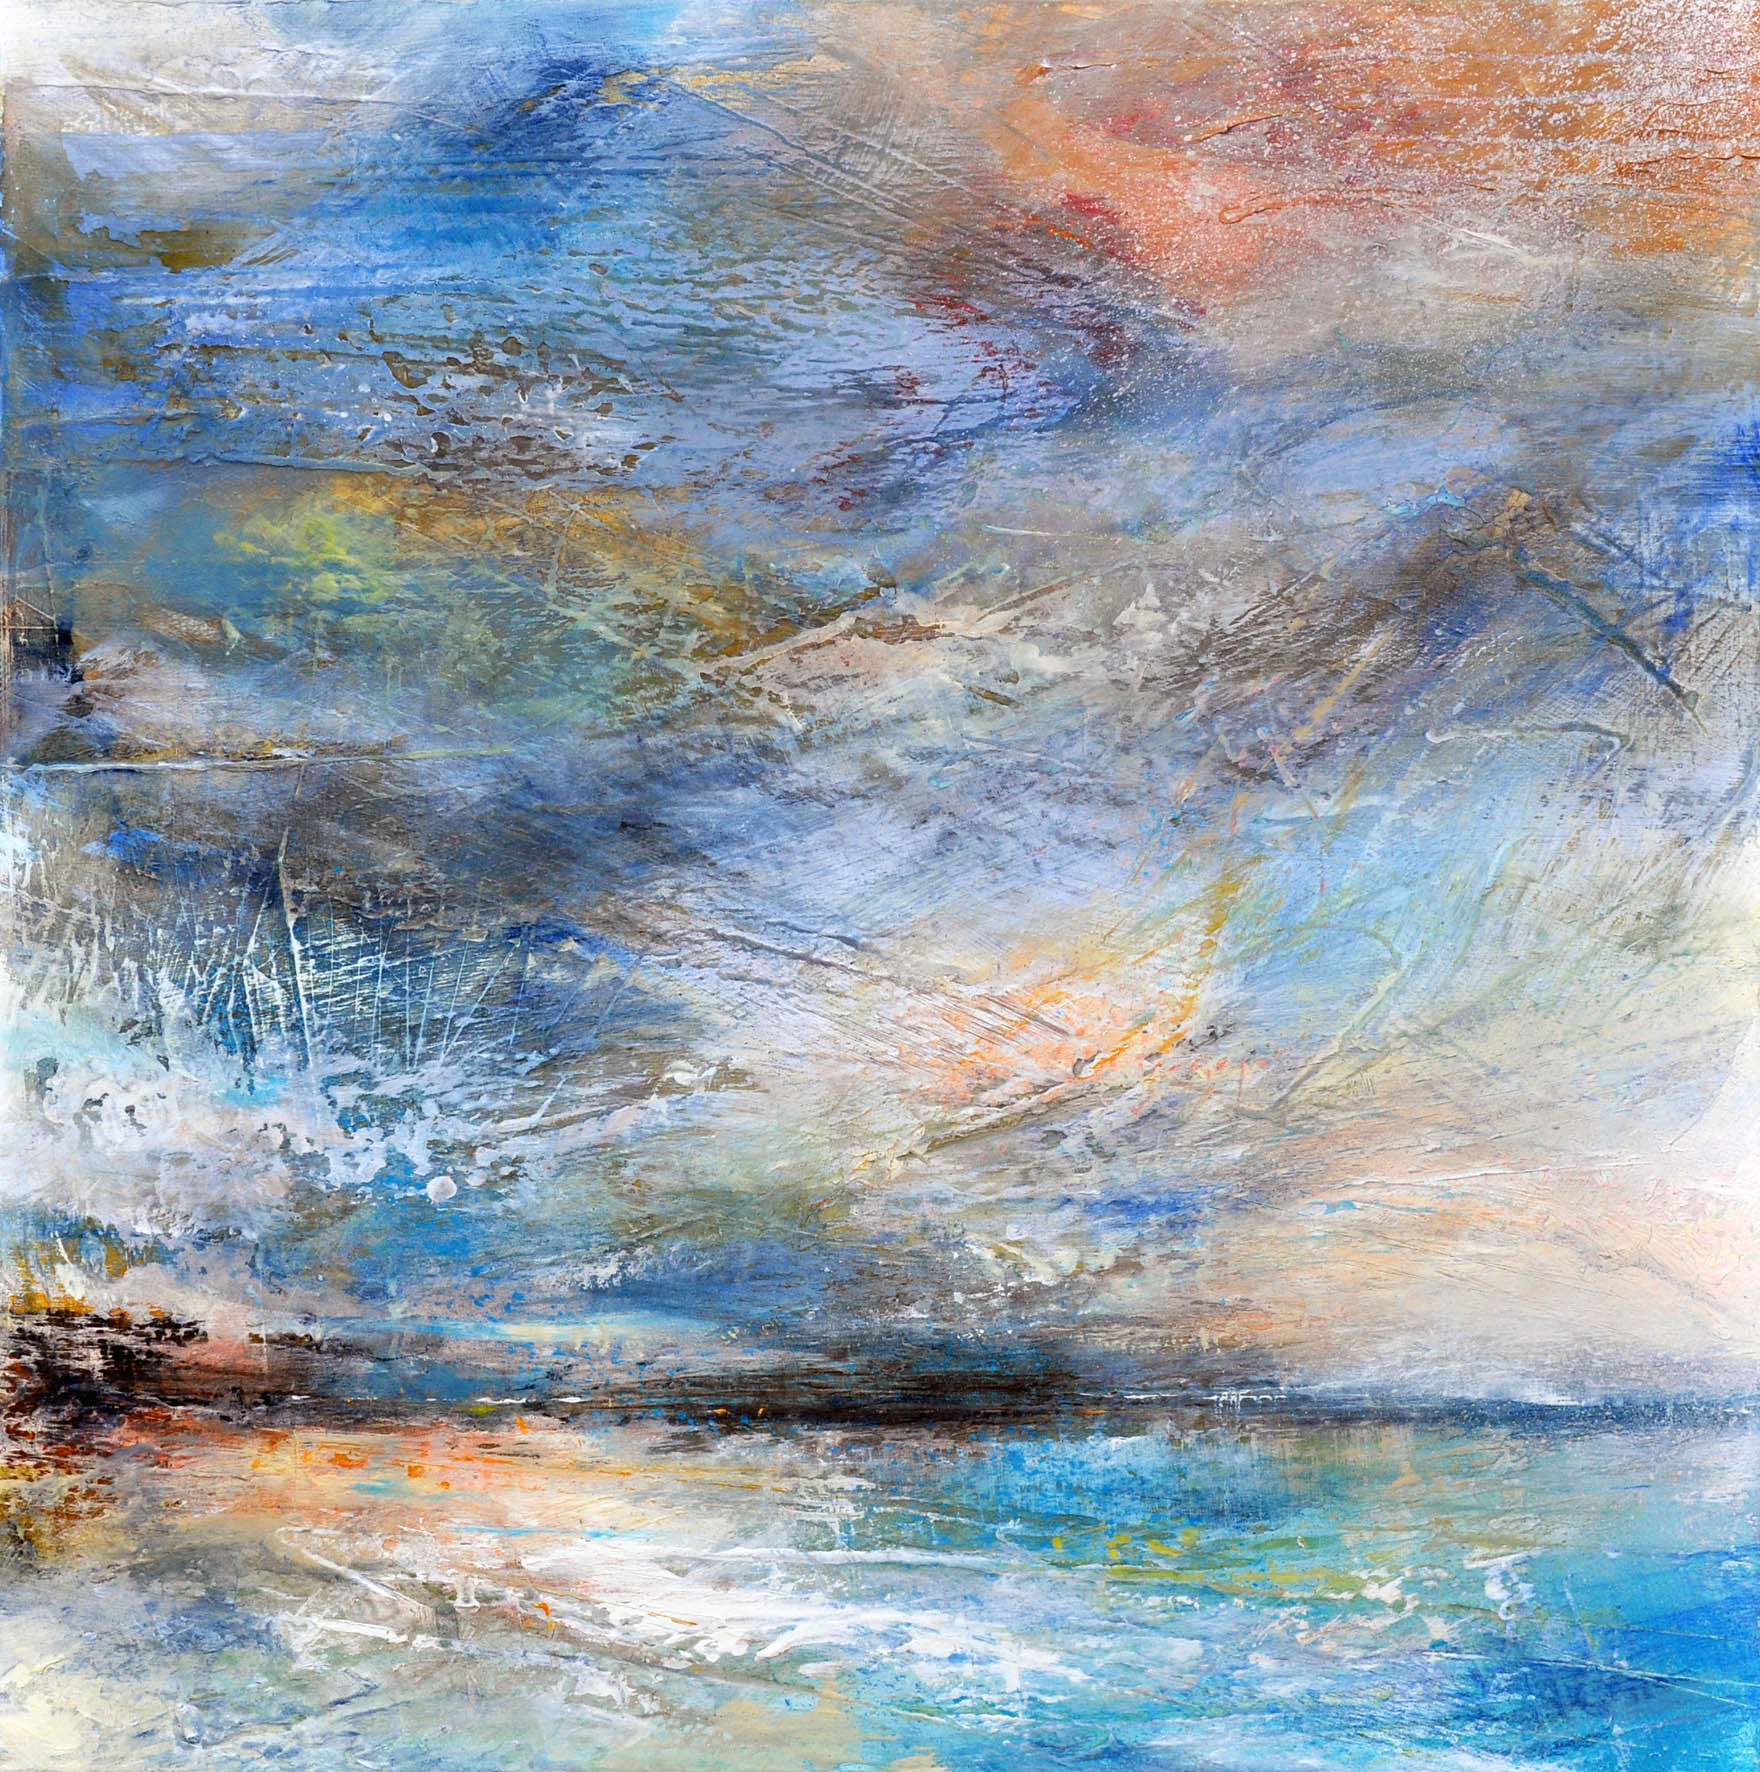 """<span class=""""link fancybox-details-link""""><a href=""""/artists/90-freya-horsley/works/6263-freya-horsley-seeing-ahead-2019/"""">View Detail Page</a></span><div class=""""artist""""><strong>Freya Horsley</strong></div> <div class=""""title""""><em>Seeing Ahead</em>, 2019</div> <div class=""""medium"""">Mixed media on canvas</div> <div class=""""dimensions"""">43 x 43 cm</div><div class=""""copyright_line"""">Own Art £75 x 10 months, 0% APR</div>"""